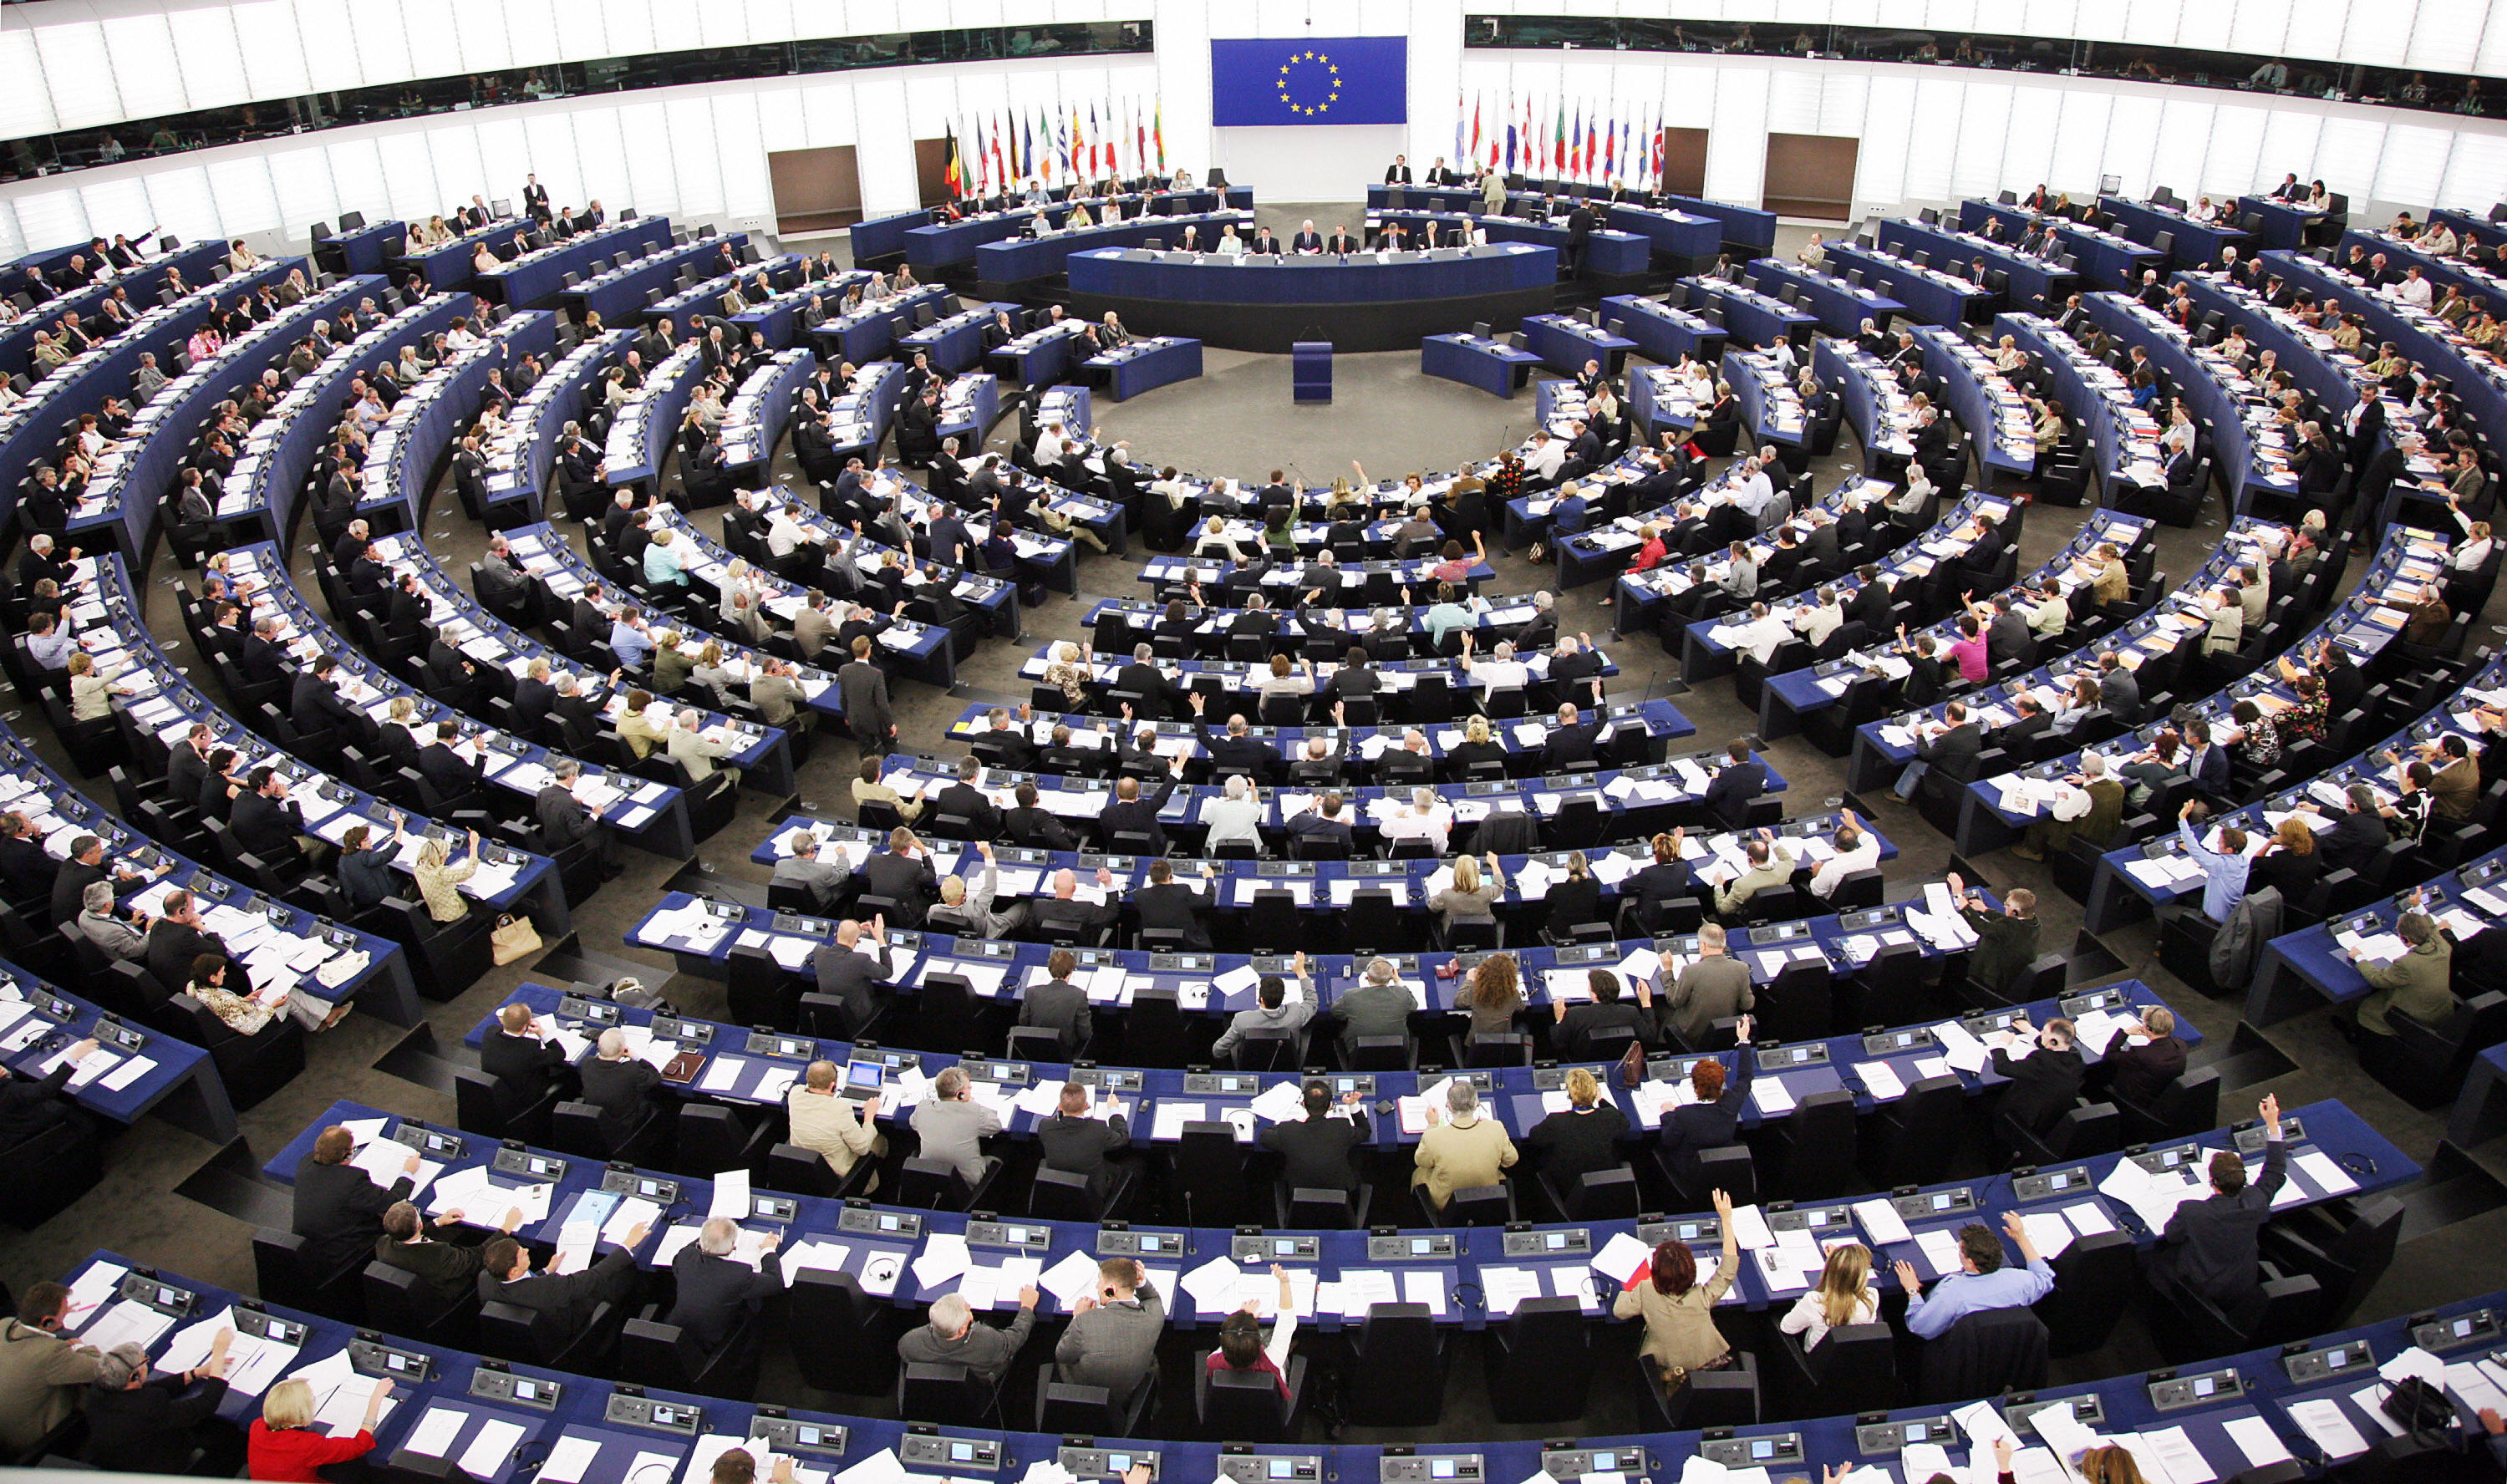 European Deputies vote during the plenary session, at the European Parliament's Hemicycle 24 May 2007 in Strasbourg.